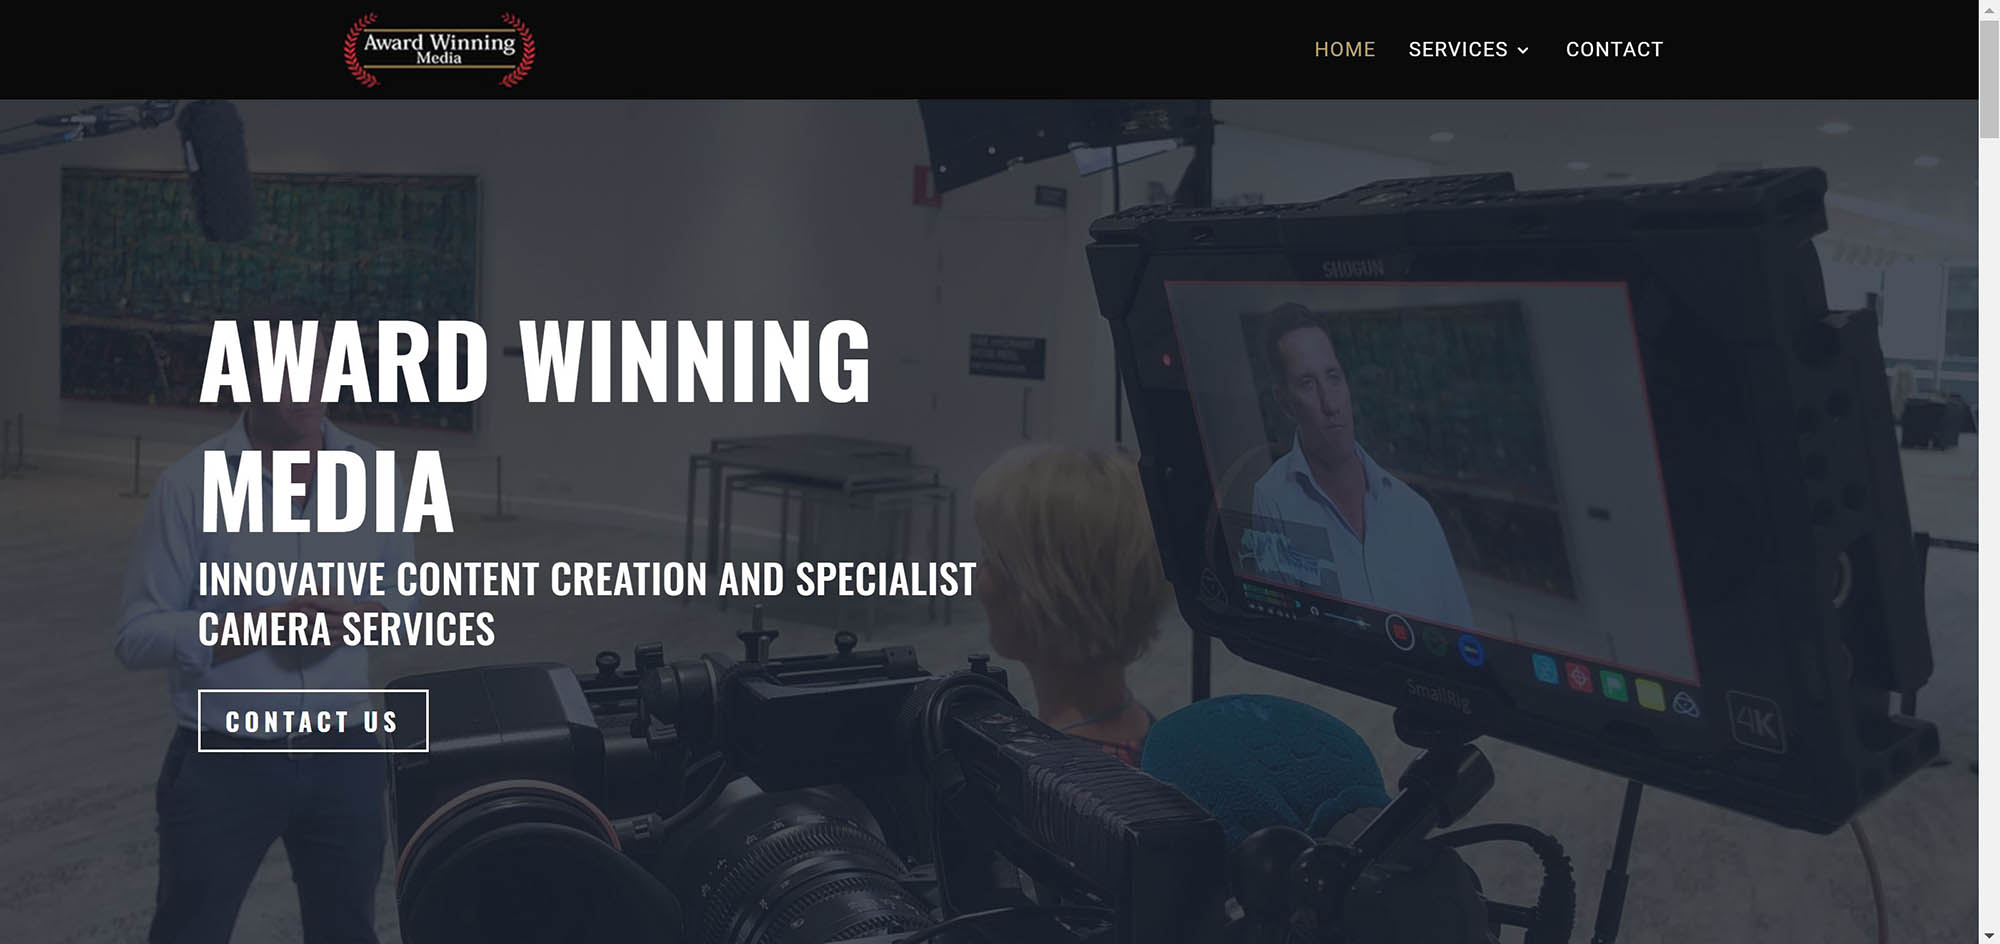 Award Winning Media Home Page by TC Web